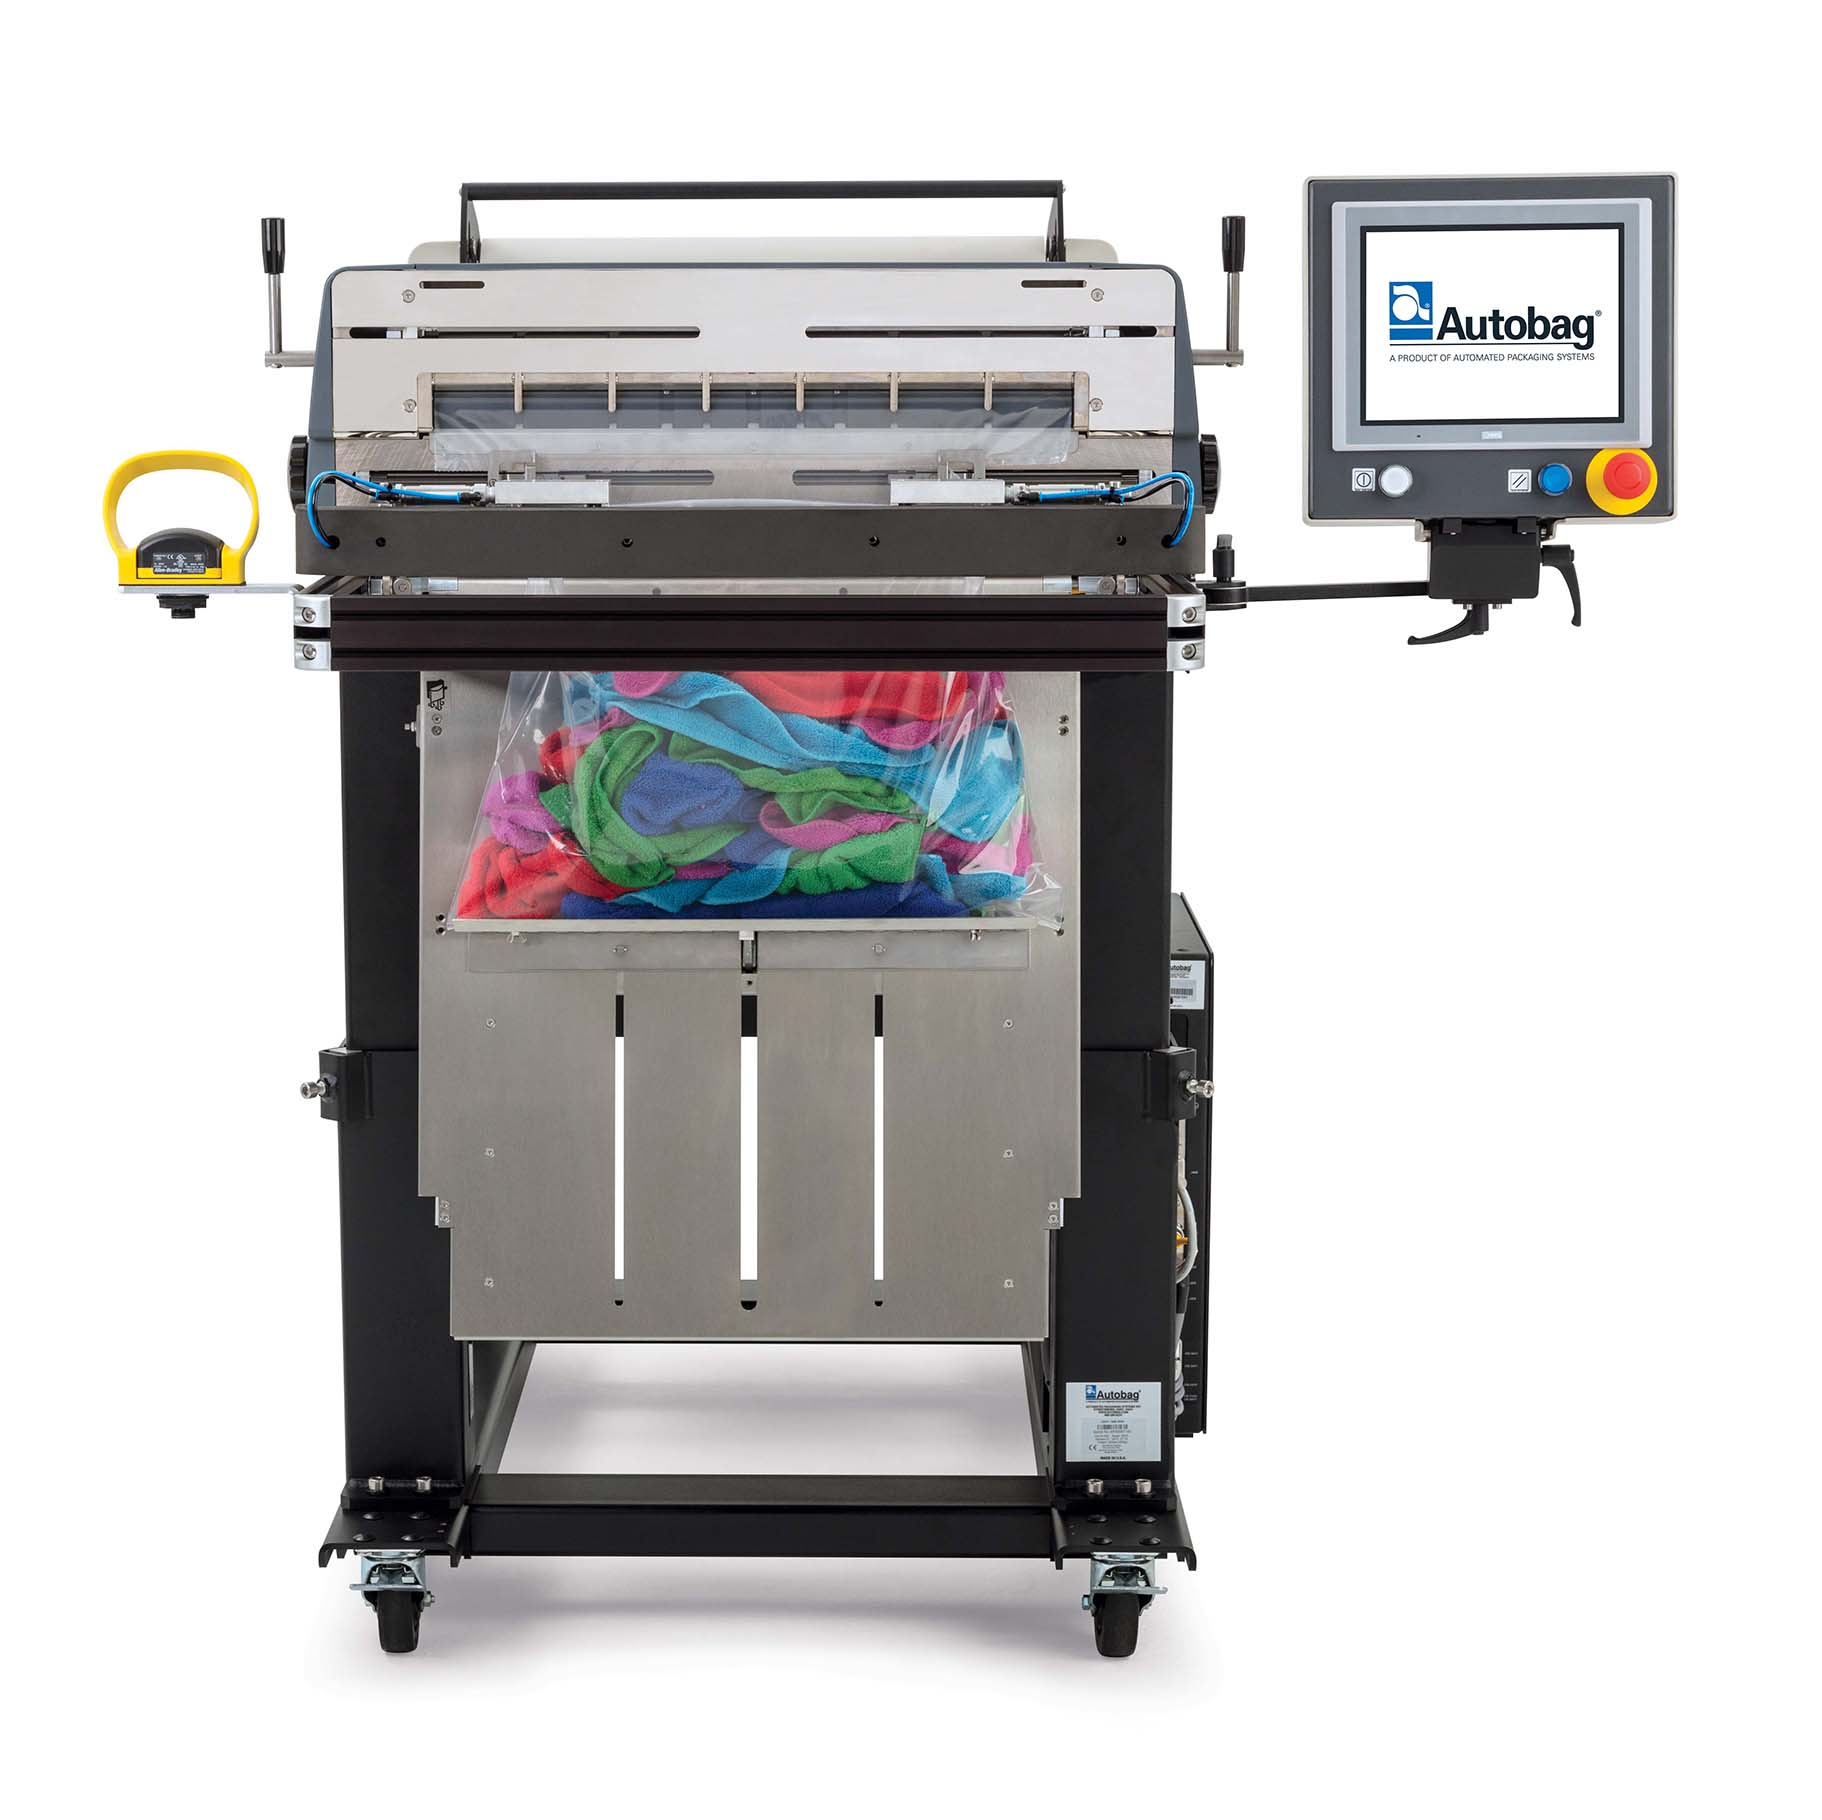 Autobag 800S automatic bag sealer front view rags applications image 1